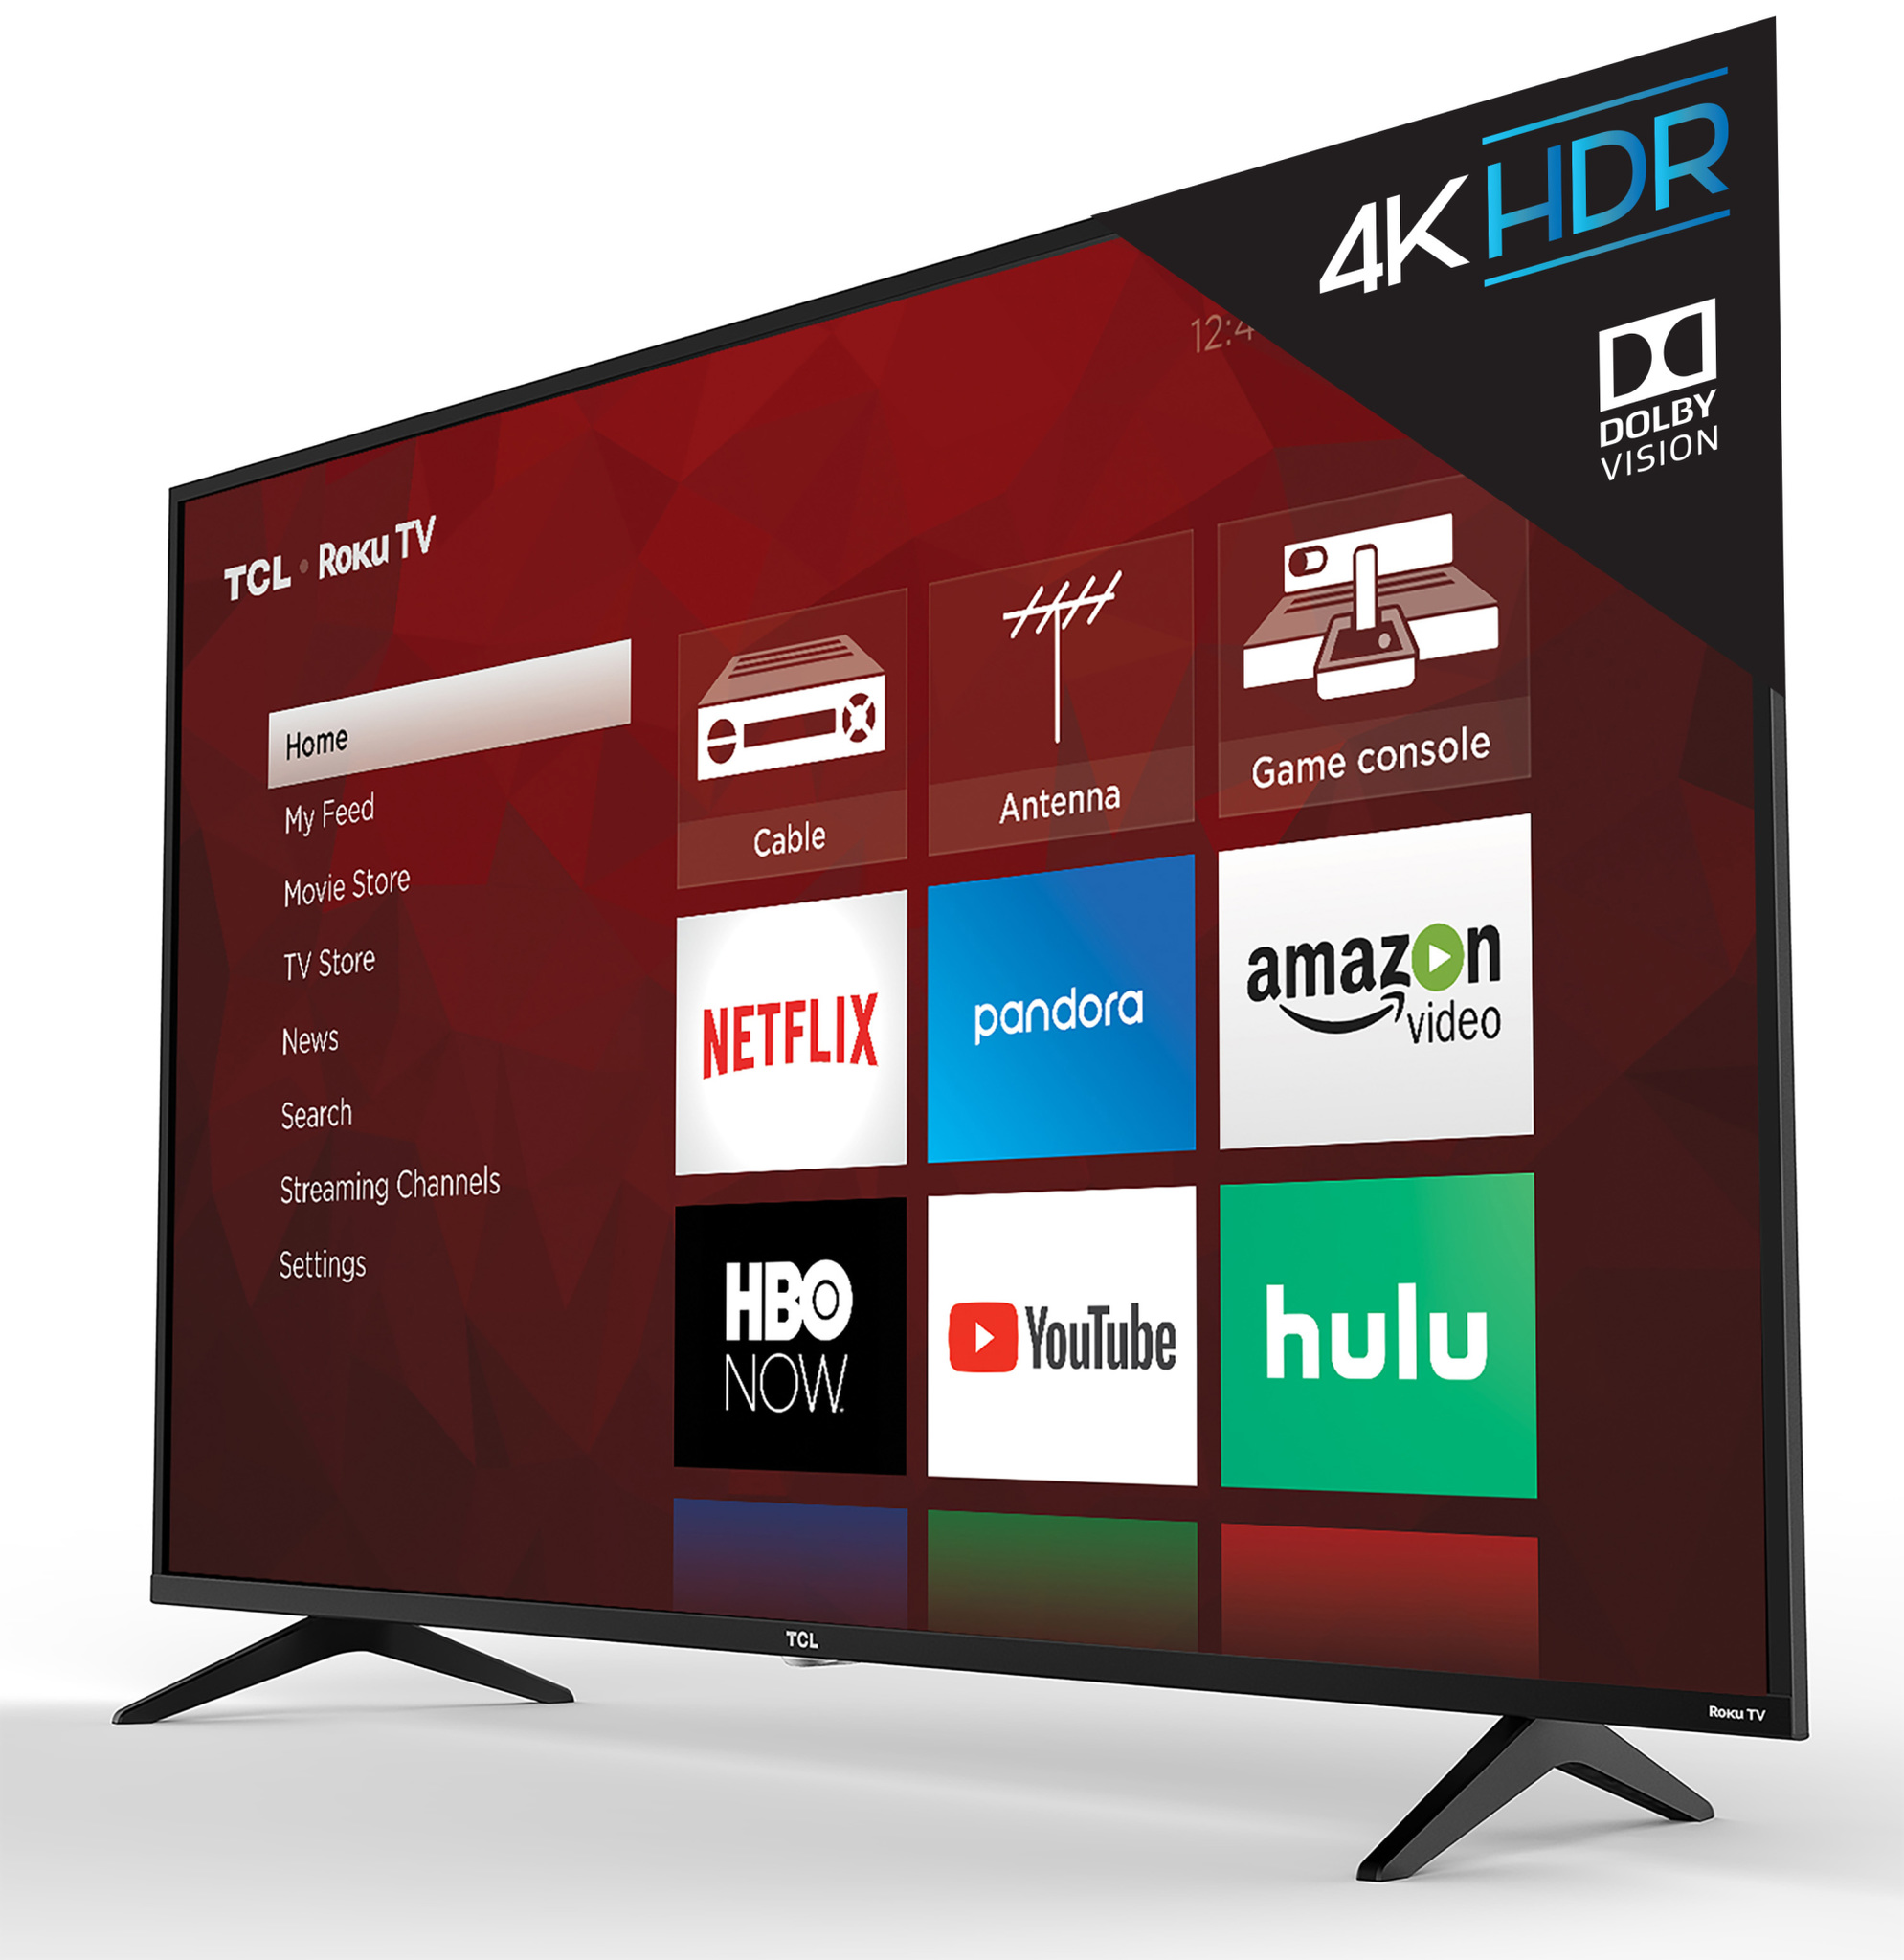 TCL's New 2018 5-Series Roku TVs With 4K Dolby Vision HDR